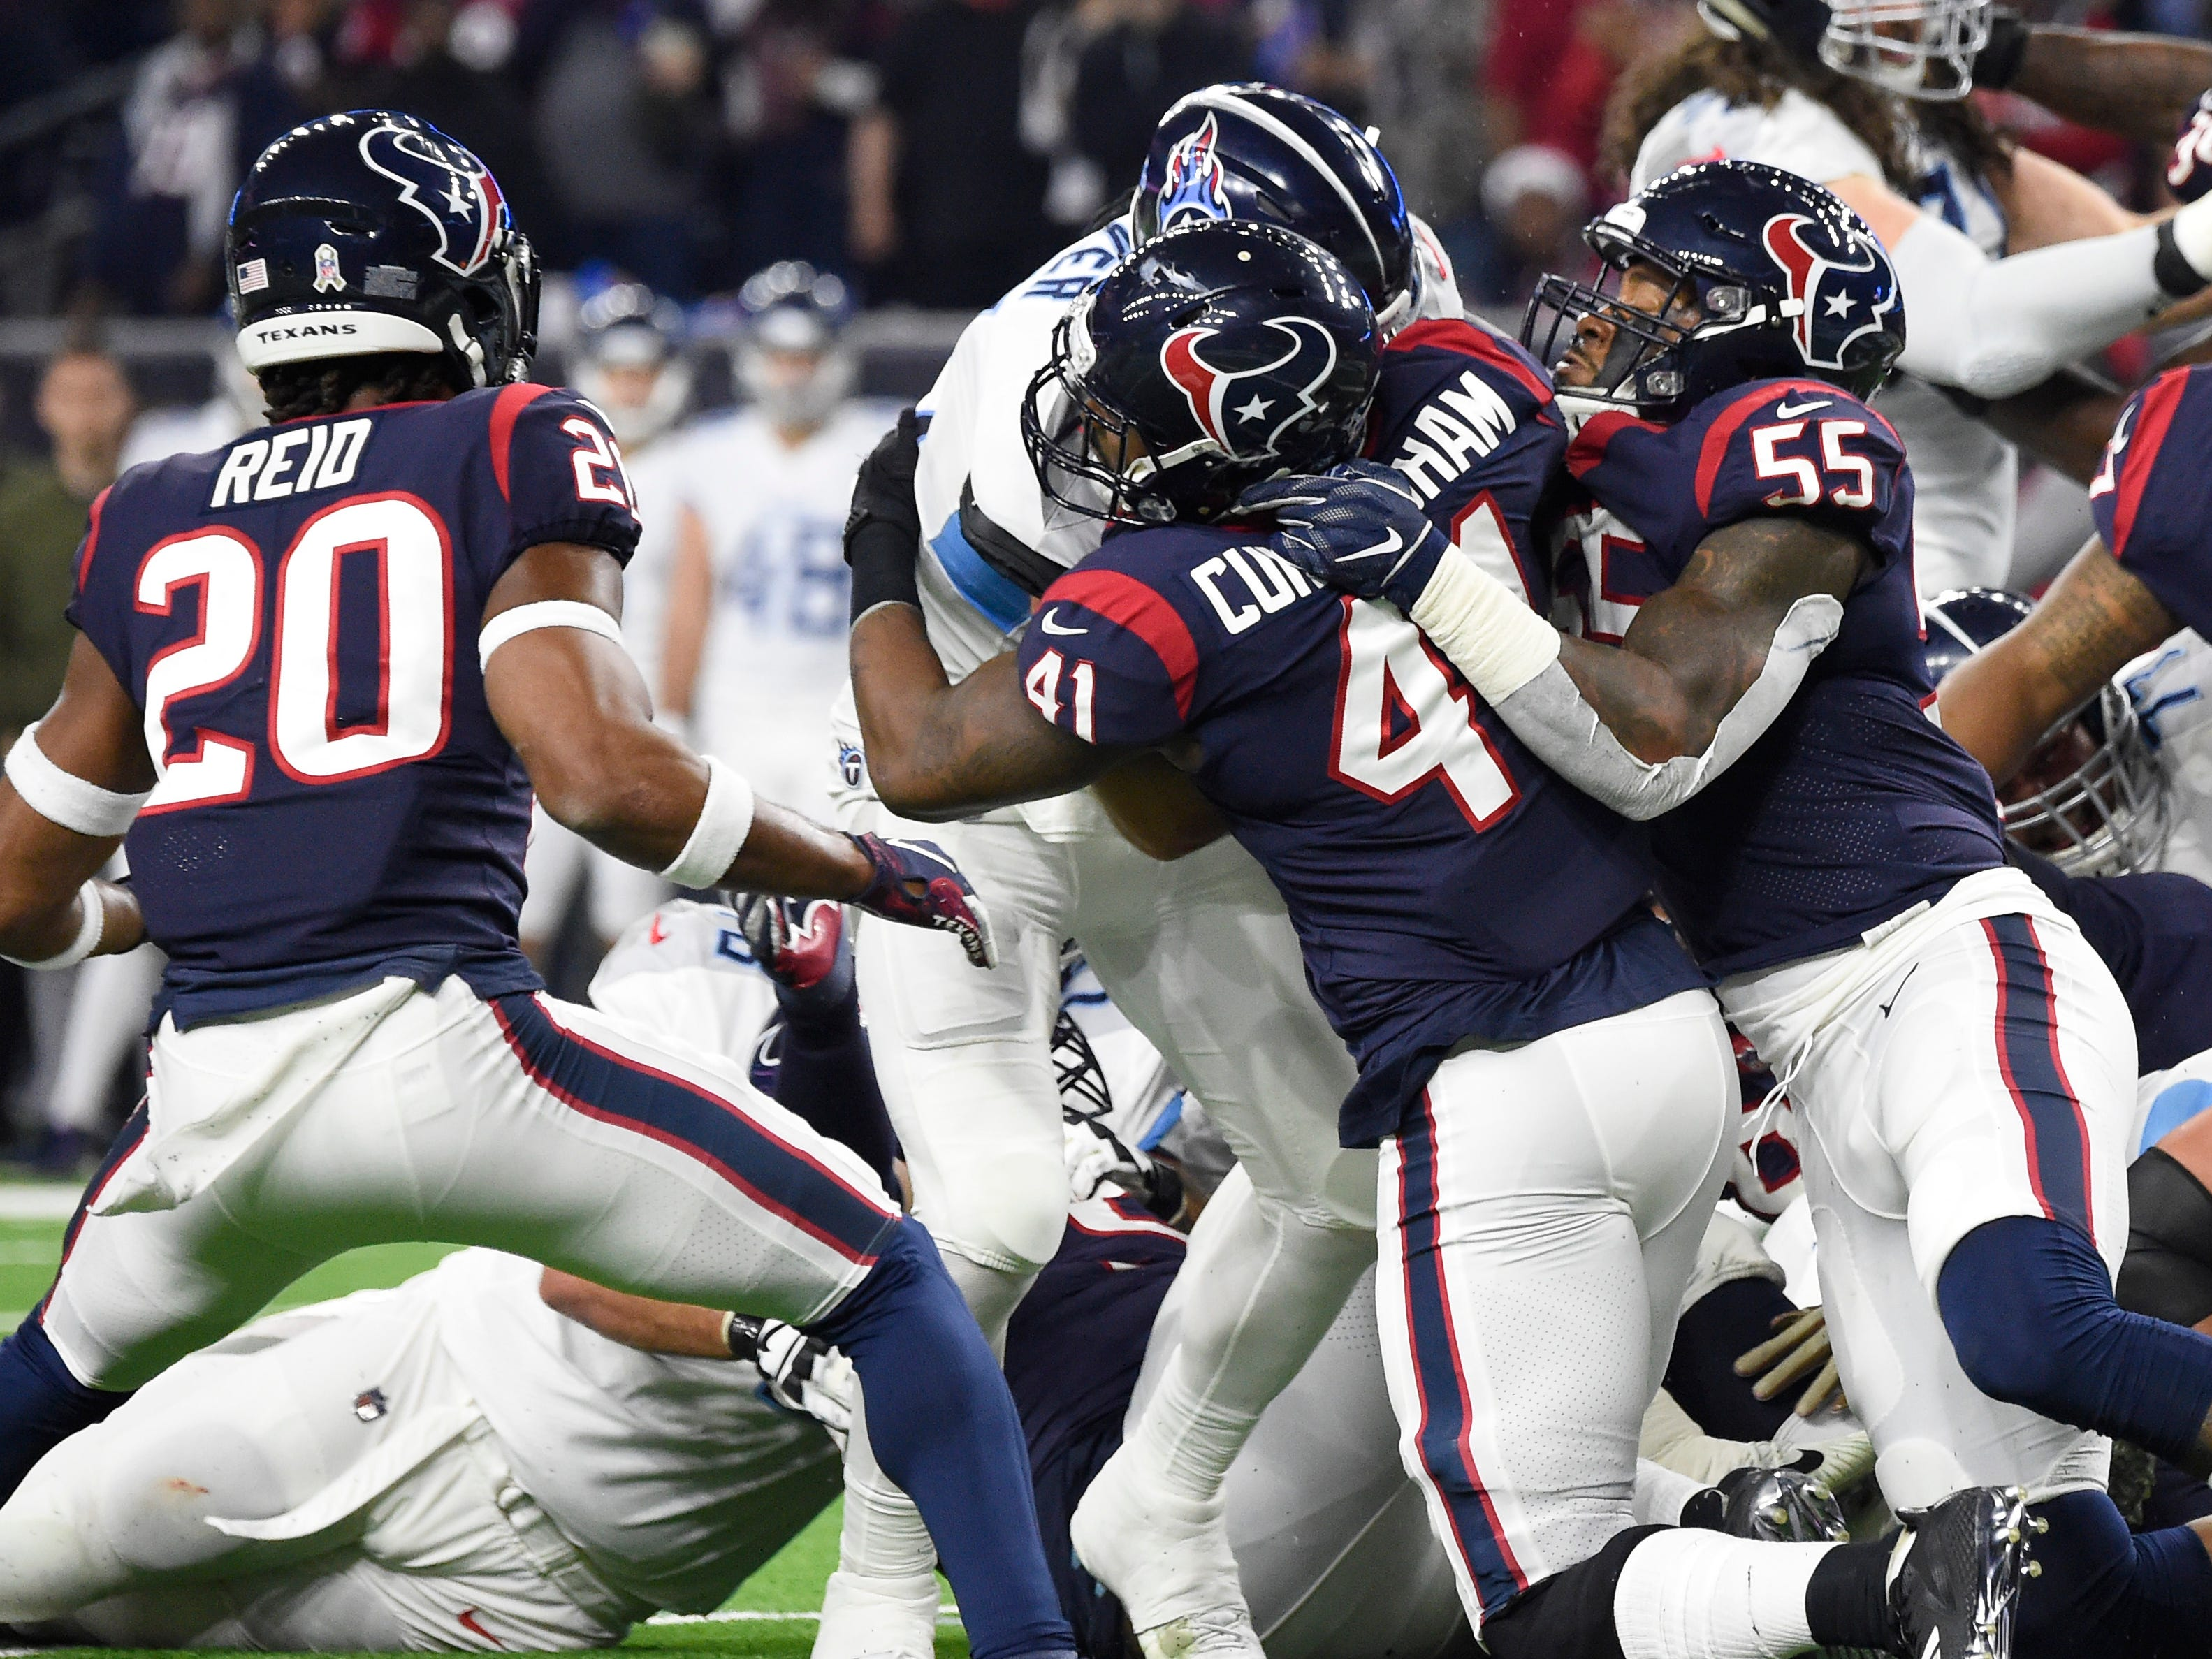 Titans tight end Luke Stocker (88) is stopped on a fourth-and-1 play near the goal line in the second quarter at NRG Stadium Monday, Nov. 26, 2018, in Houston, Texas.